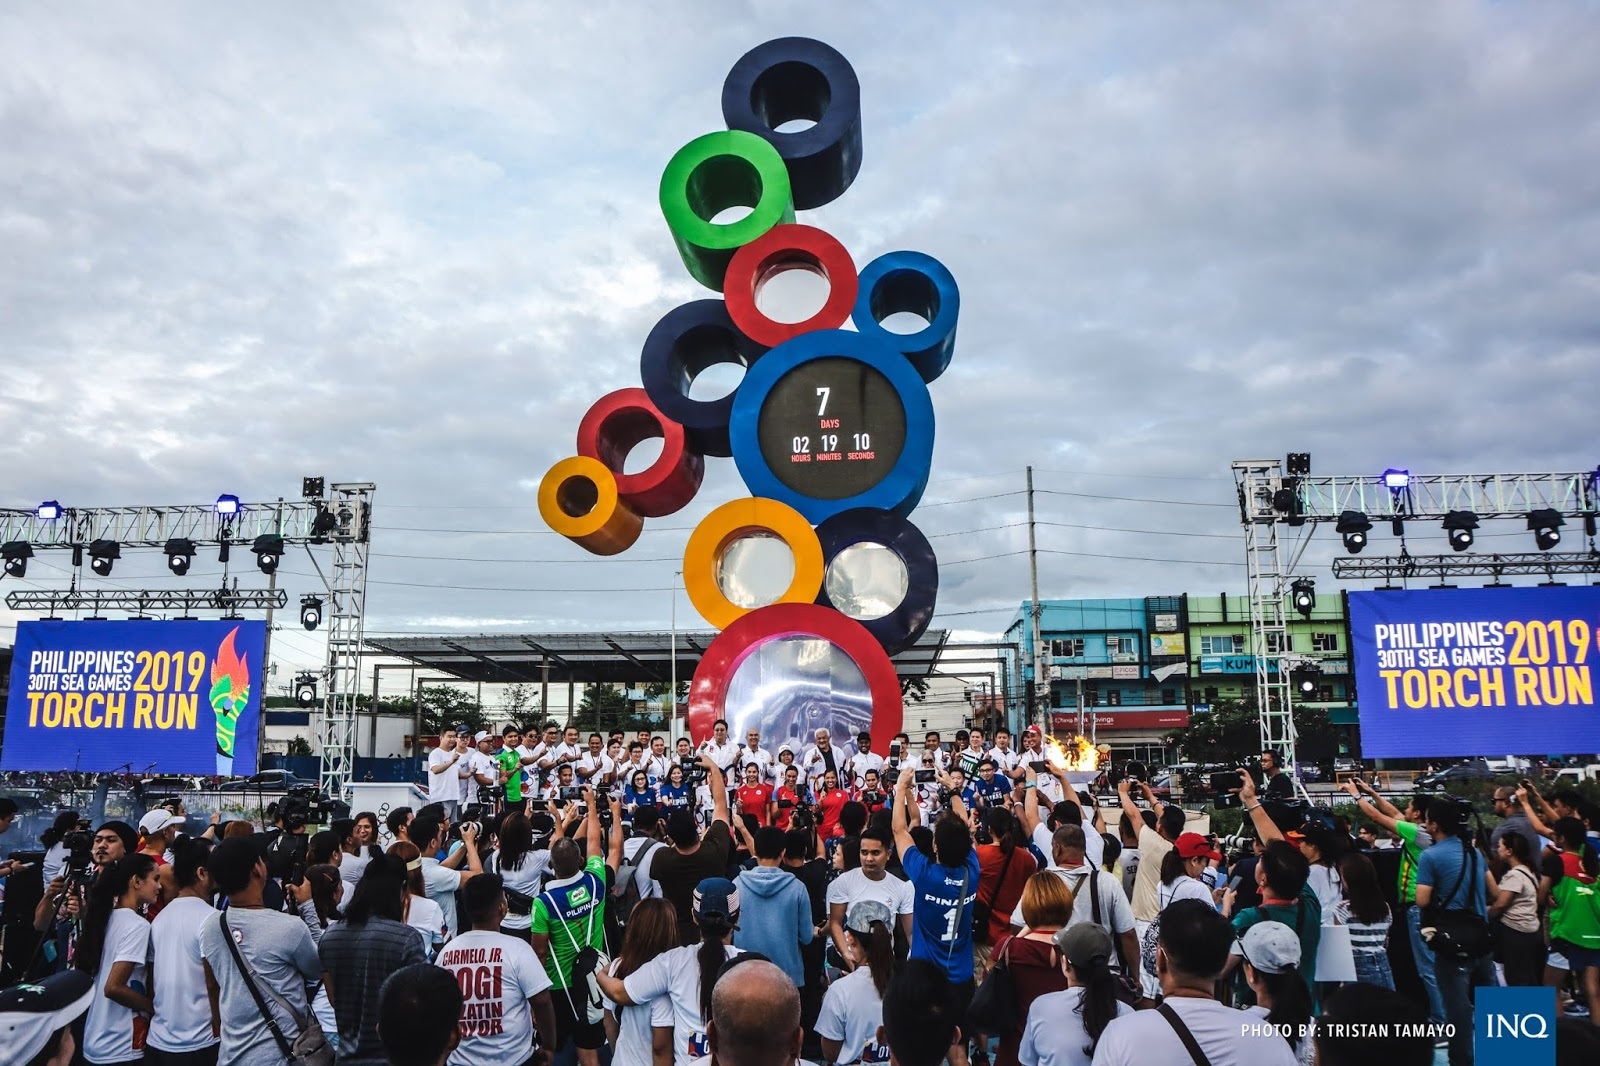 SEA Games 2019: DILG recommends class suspensions for at least 20 schools on December 2 to 6